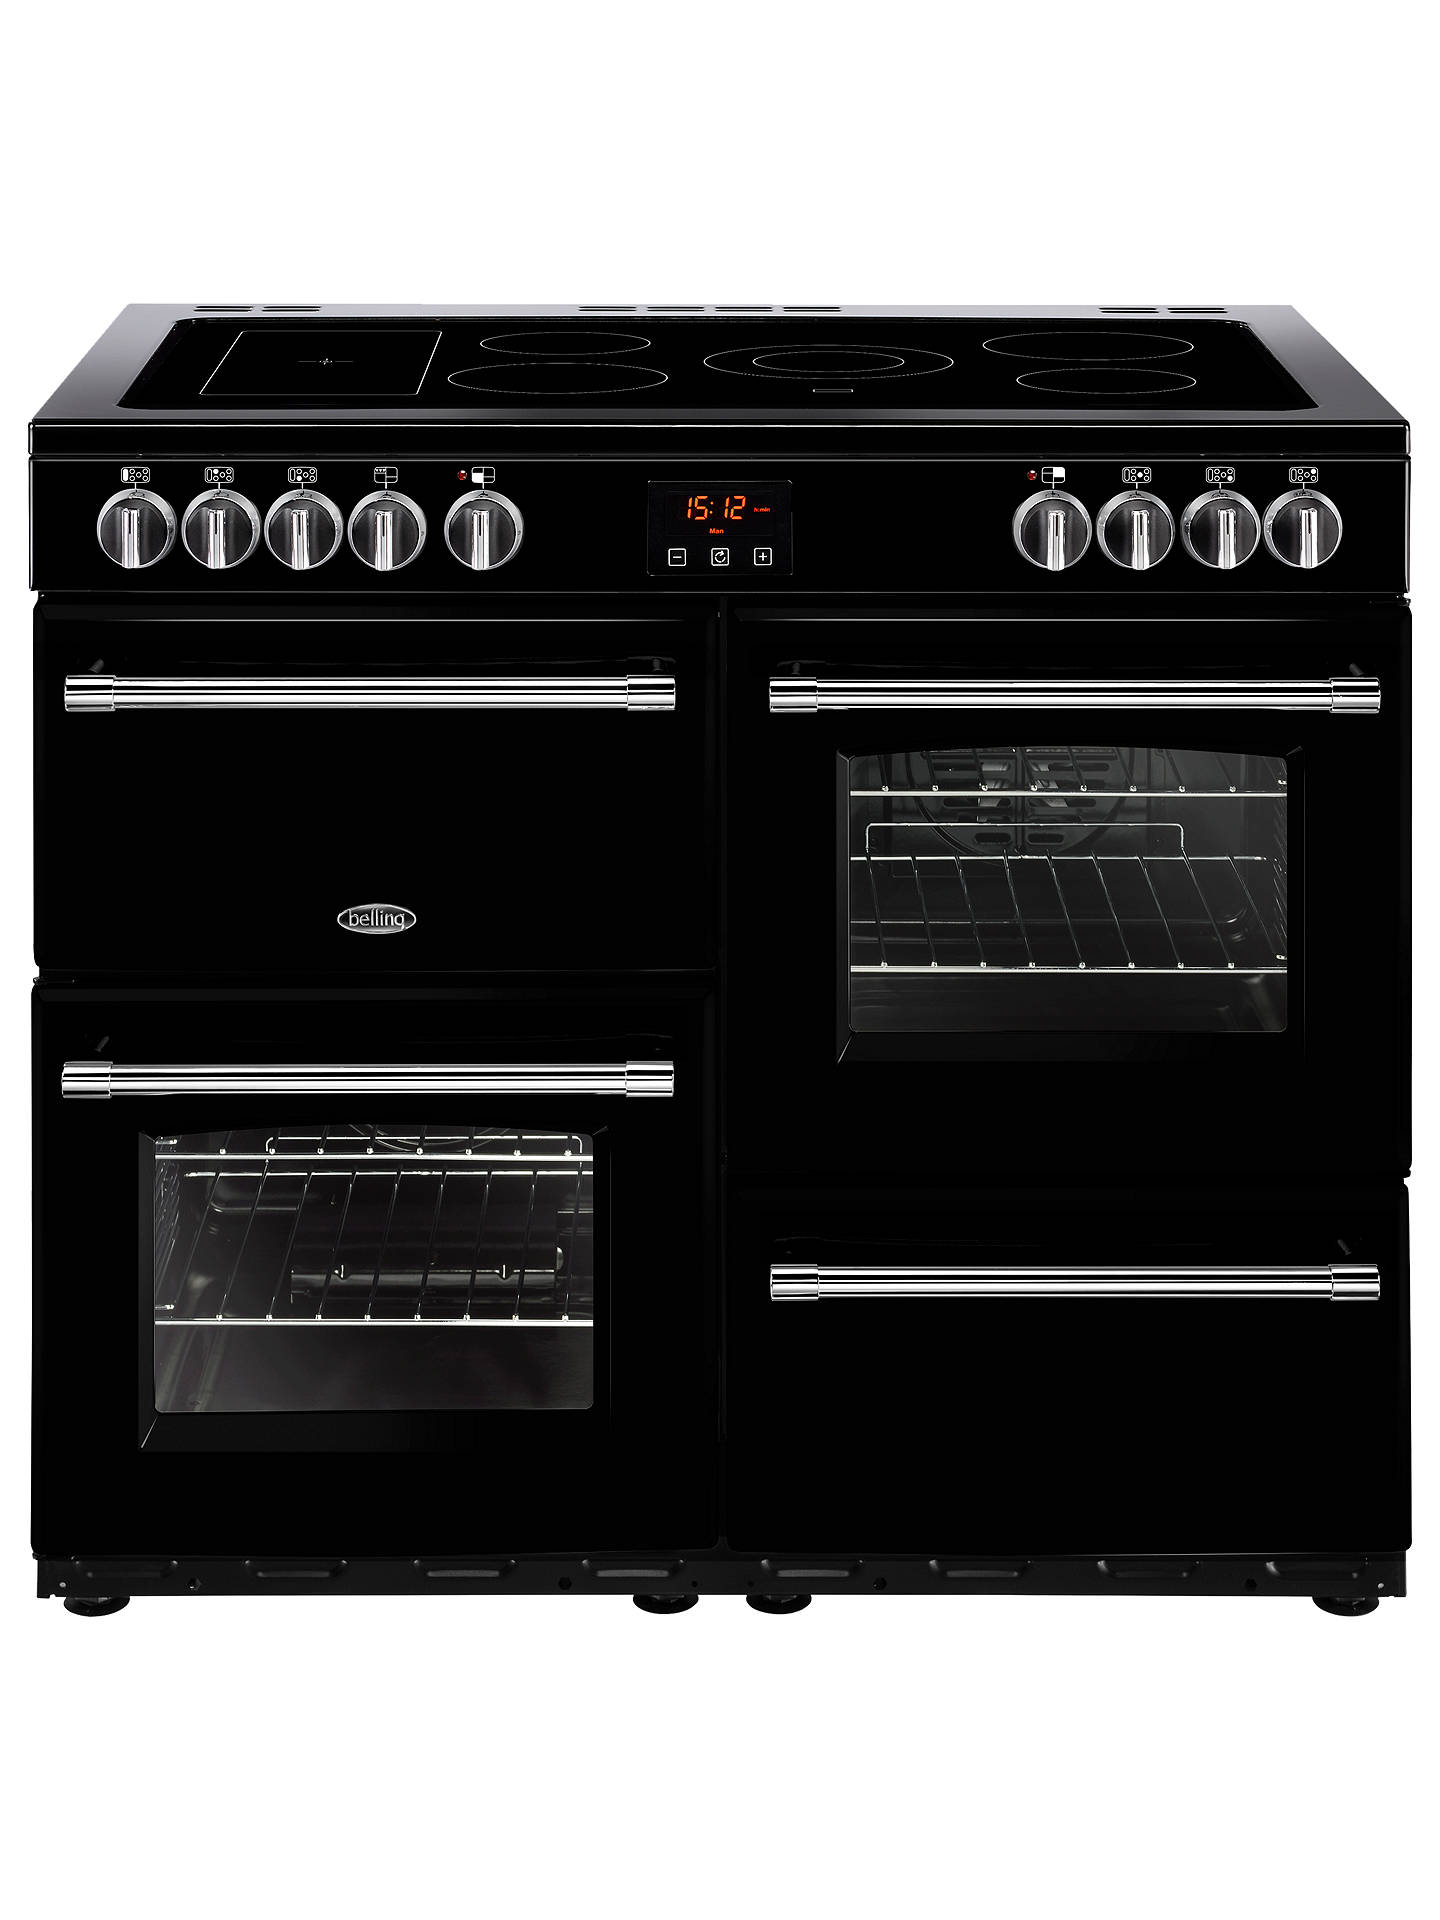 belling farmhouse 100e electric range cooker with ceramic hob atbuy belling farmhouse 100e electric range cooker with ceramic hob, black online at johnlewis